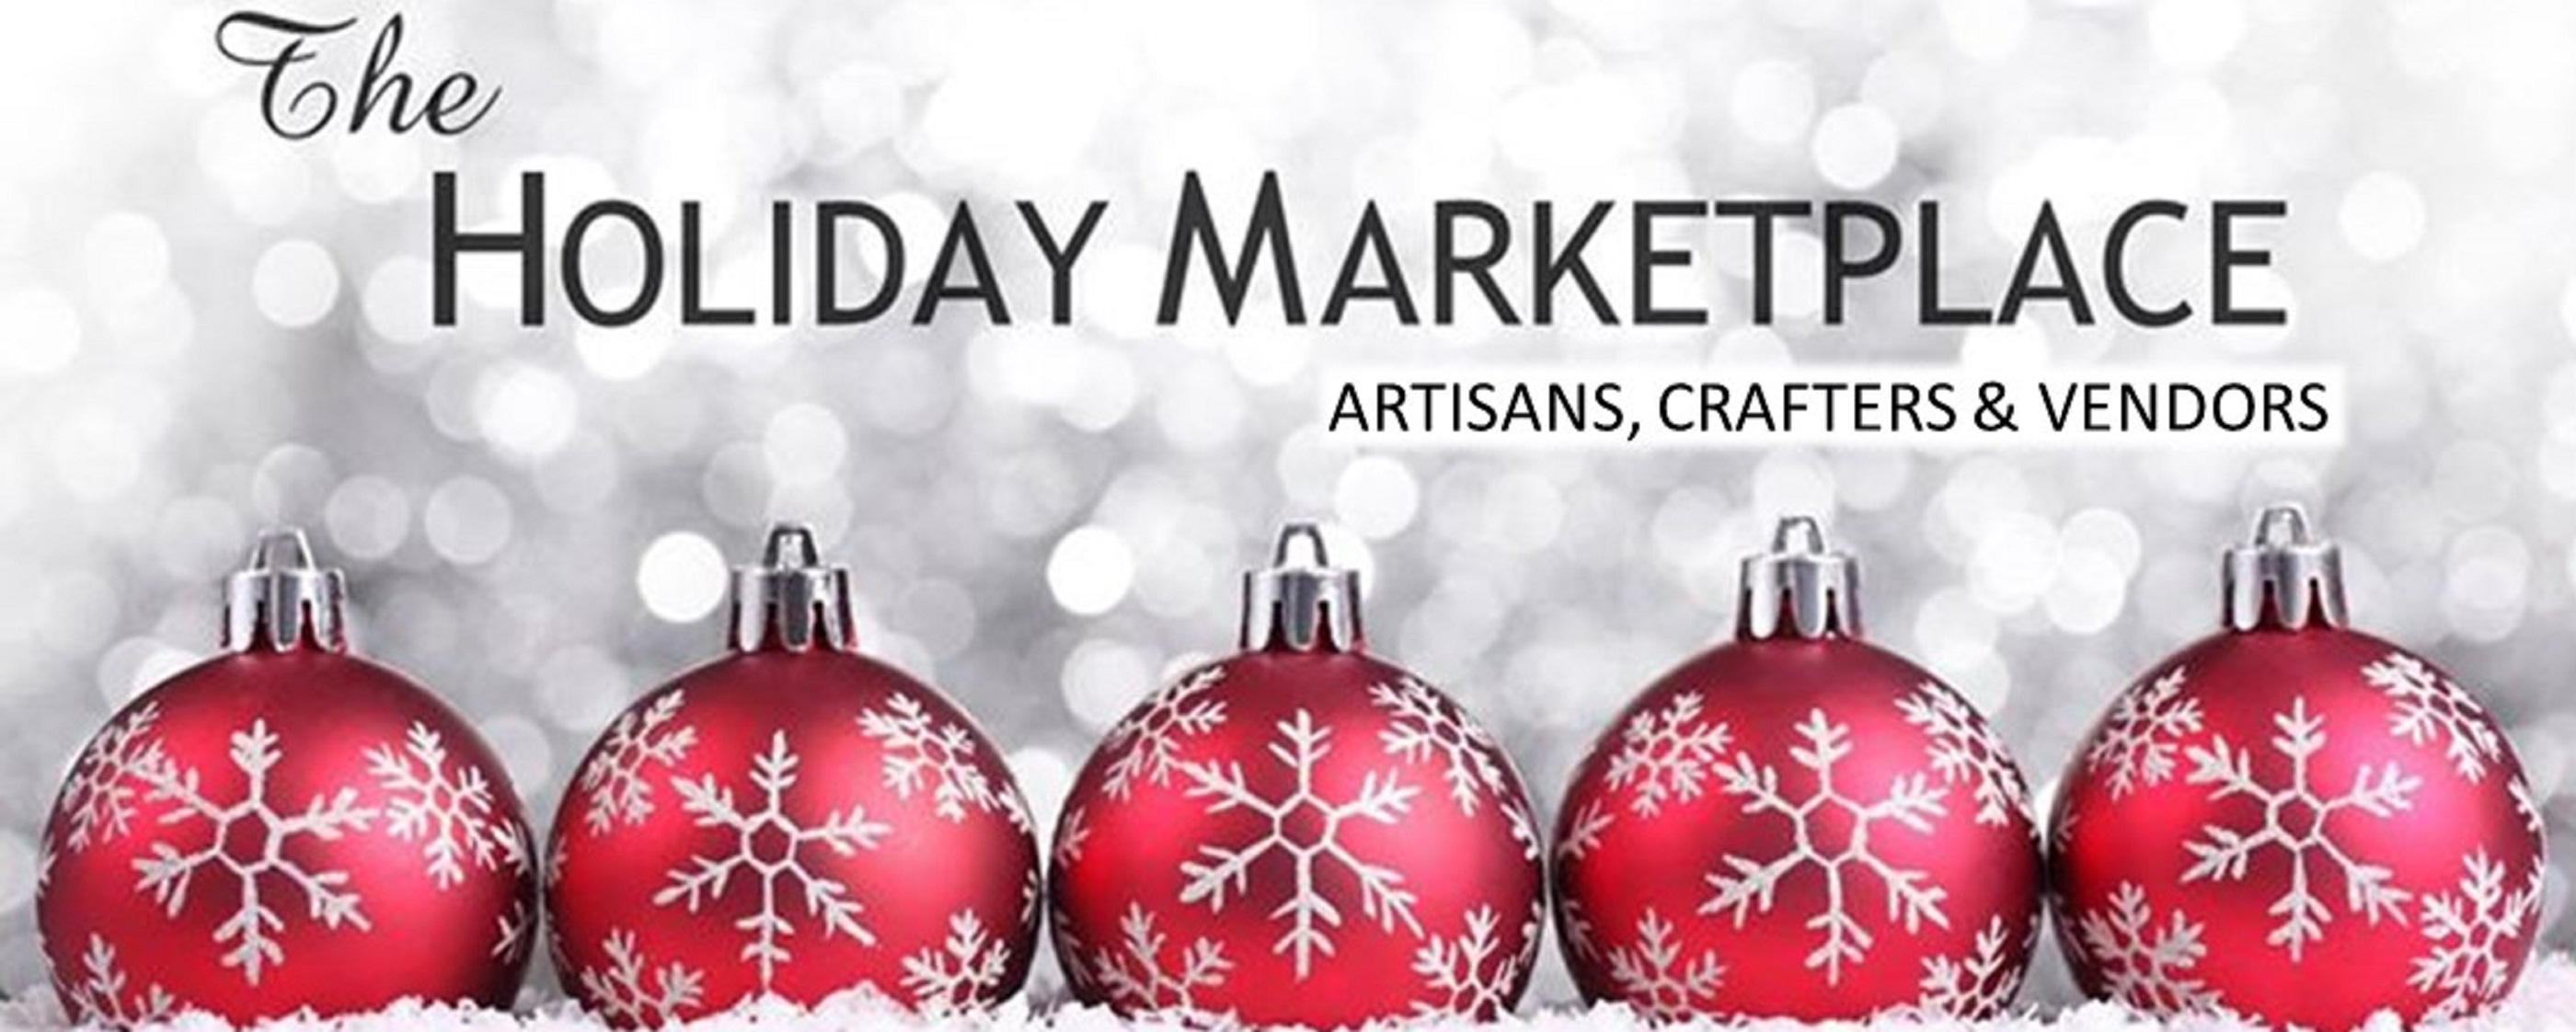 Holiday Marketplace Page Banner 2